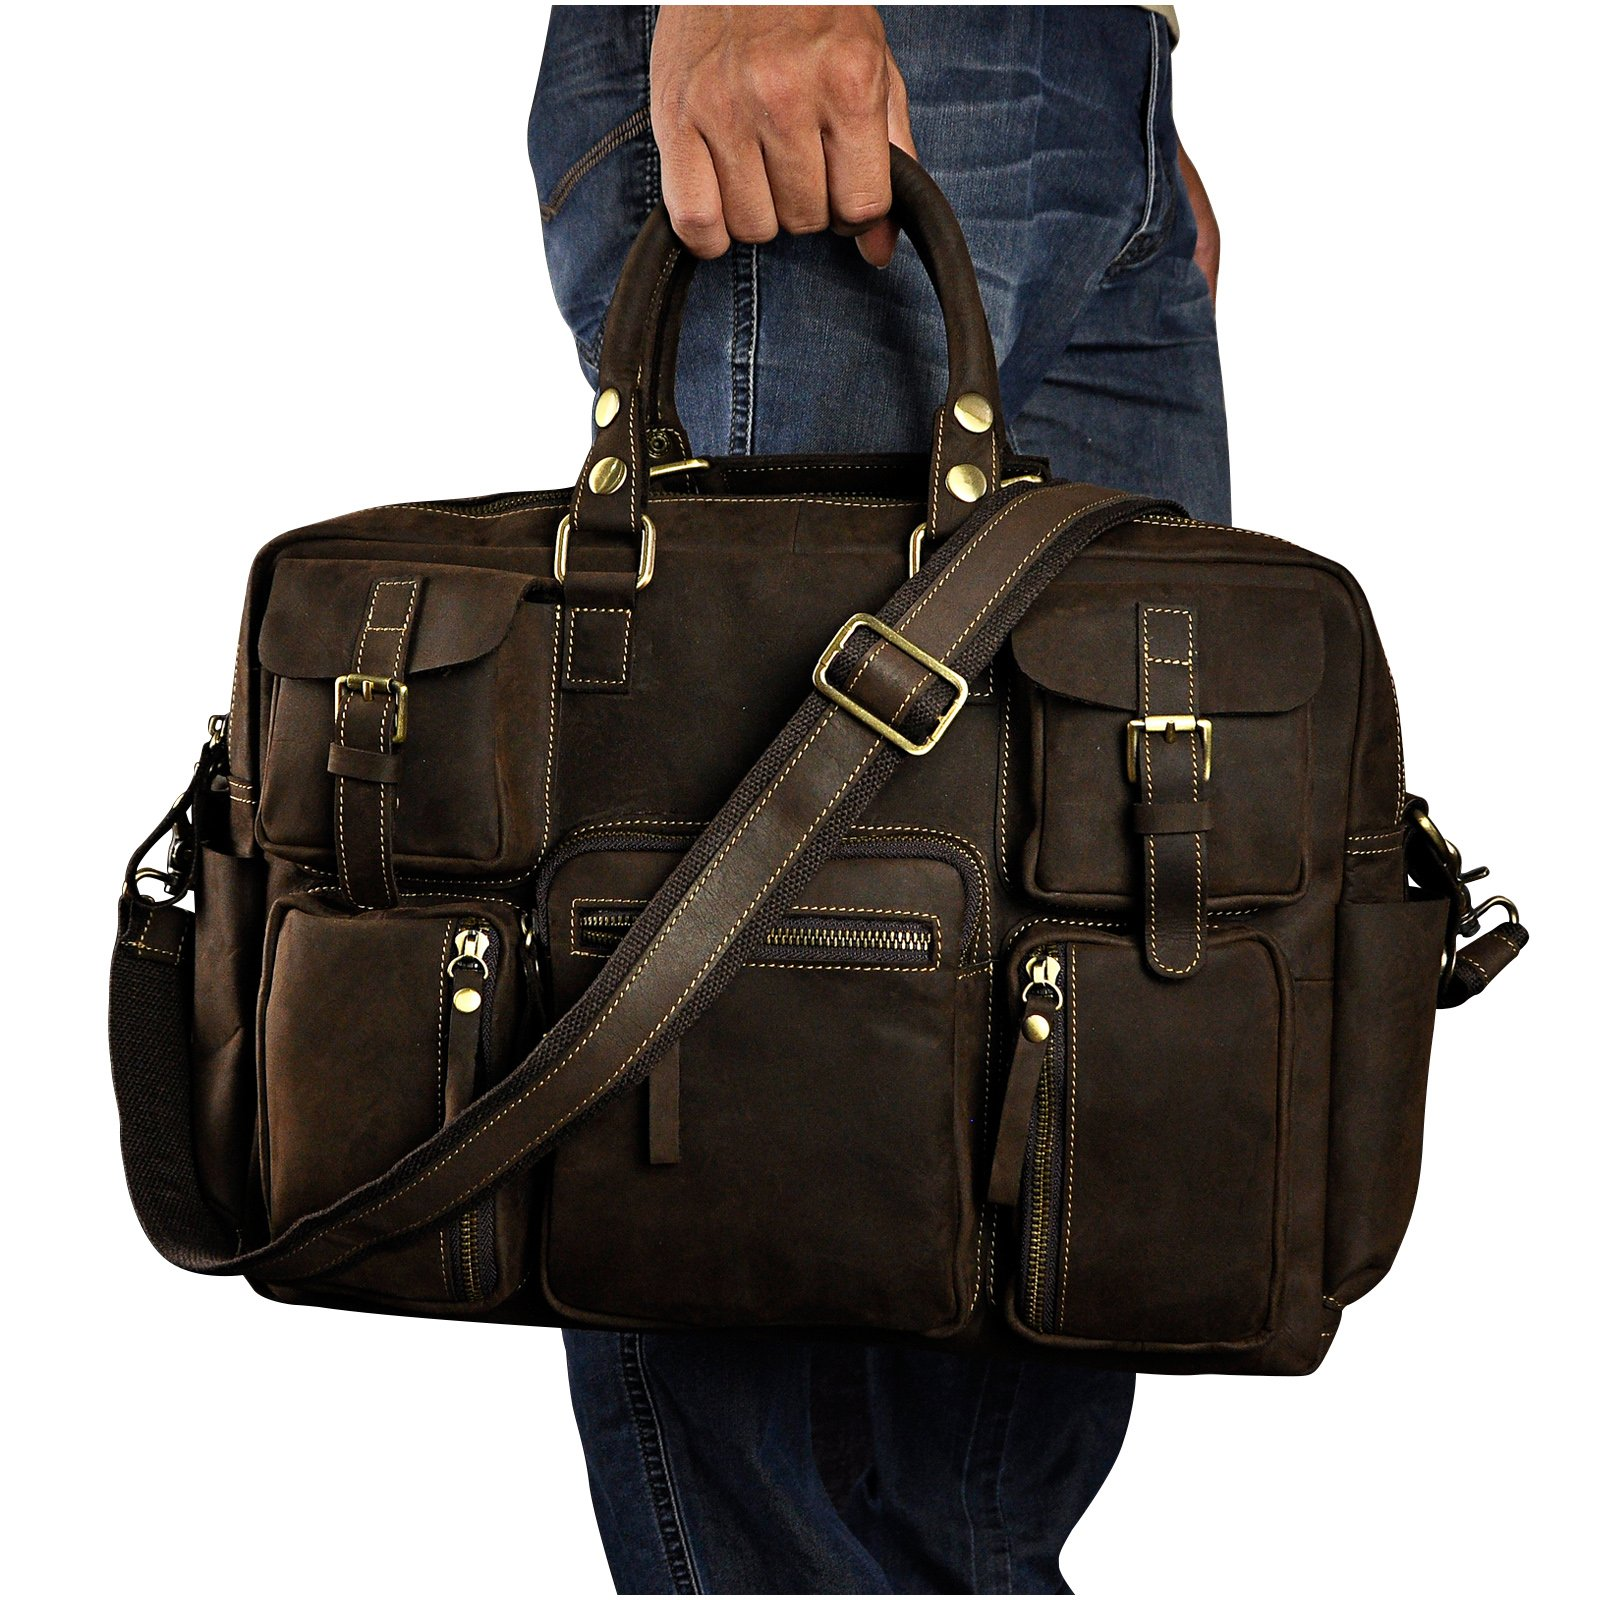 Le'aokuu Mens Genuine Leather Laptop Case Briefcase Travel Luggage Duffle Gym Tote Bags (Brown)